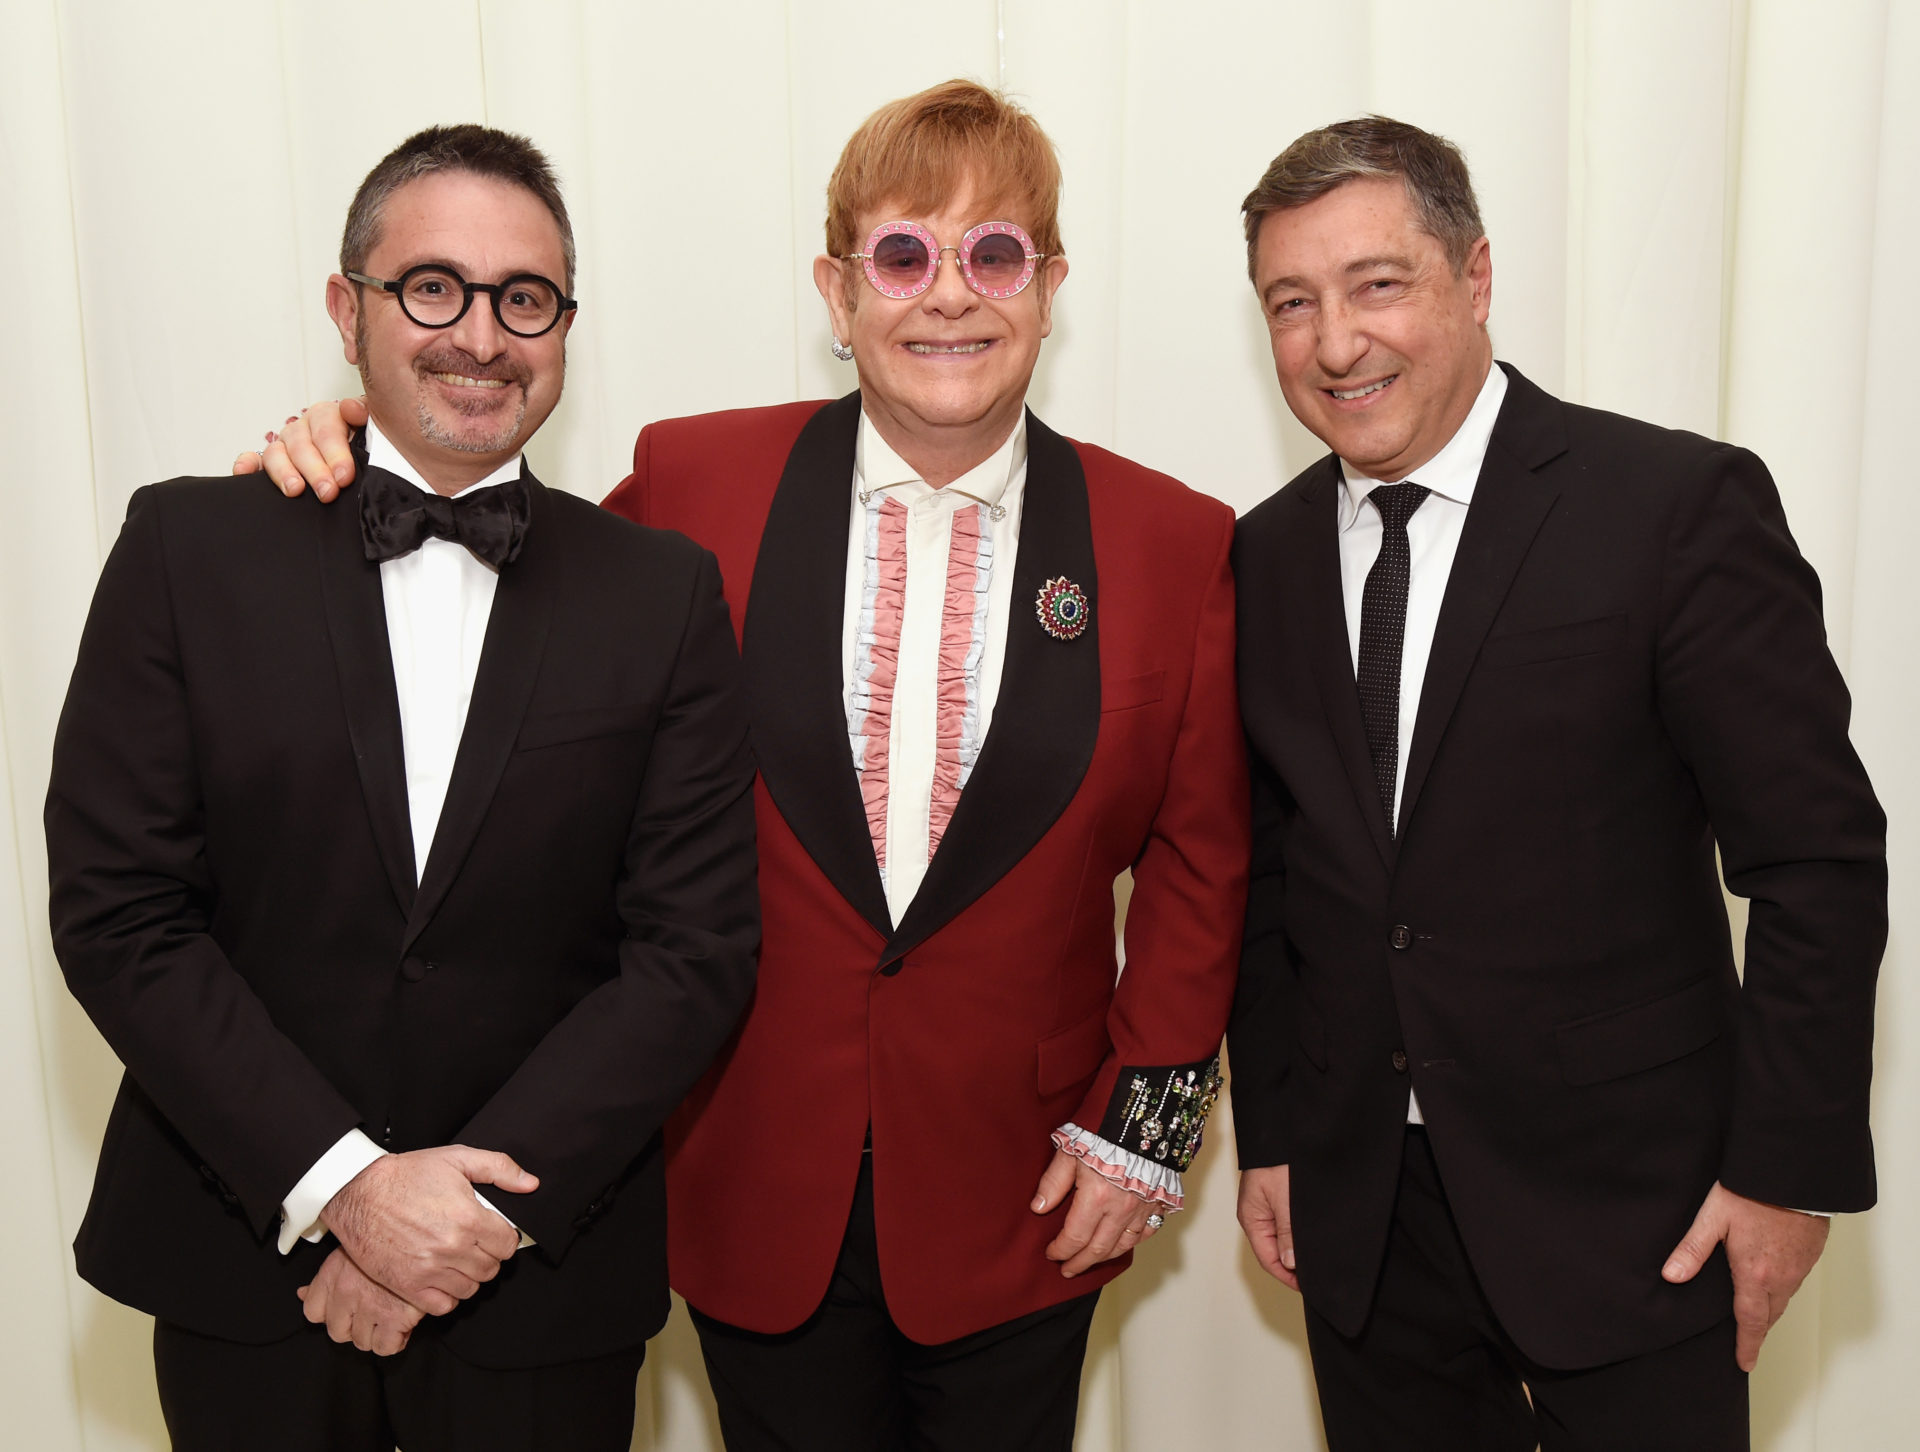 Óscar Moya, director de Patrocinios y Contenidos de BBVA, sir Elton John y Joan Roca, de El Celler de Can Roca - Photo by Michael Kovac Getty Images for EJAF